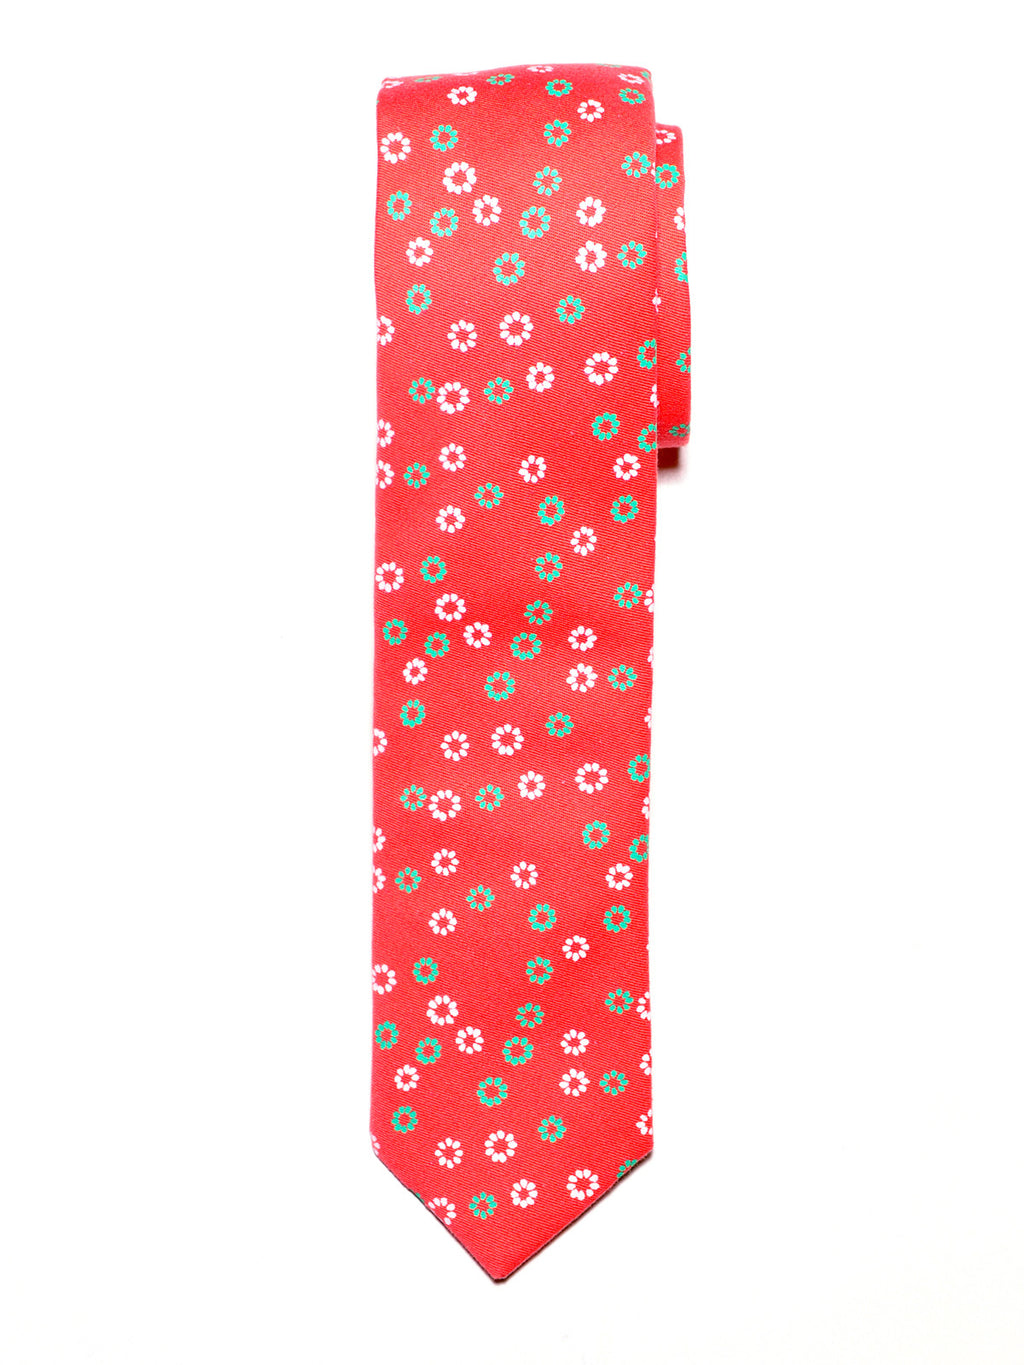 Orange Floral Cotton Tie